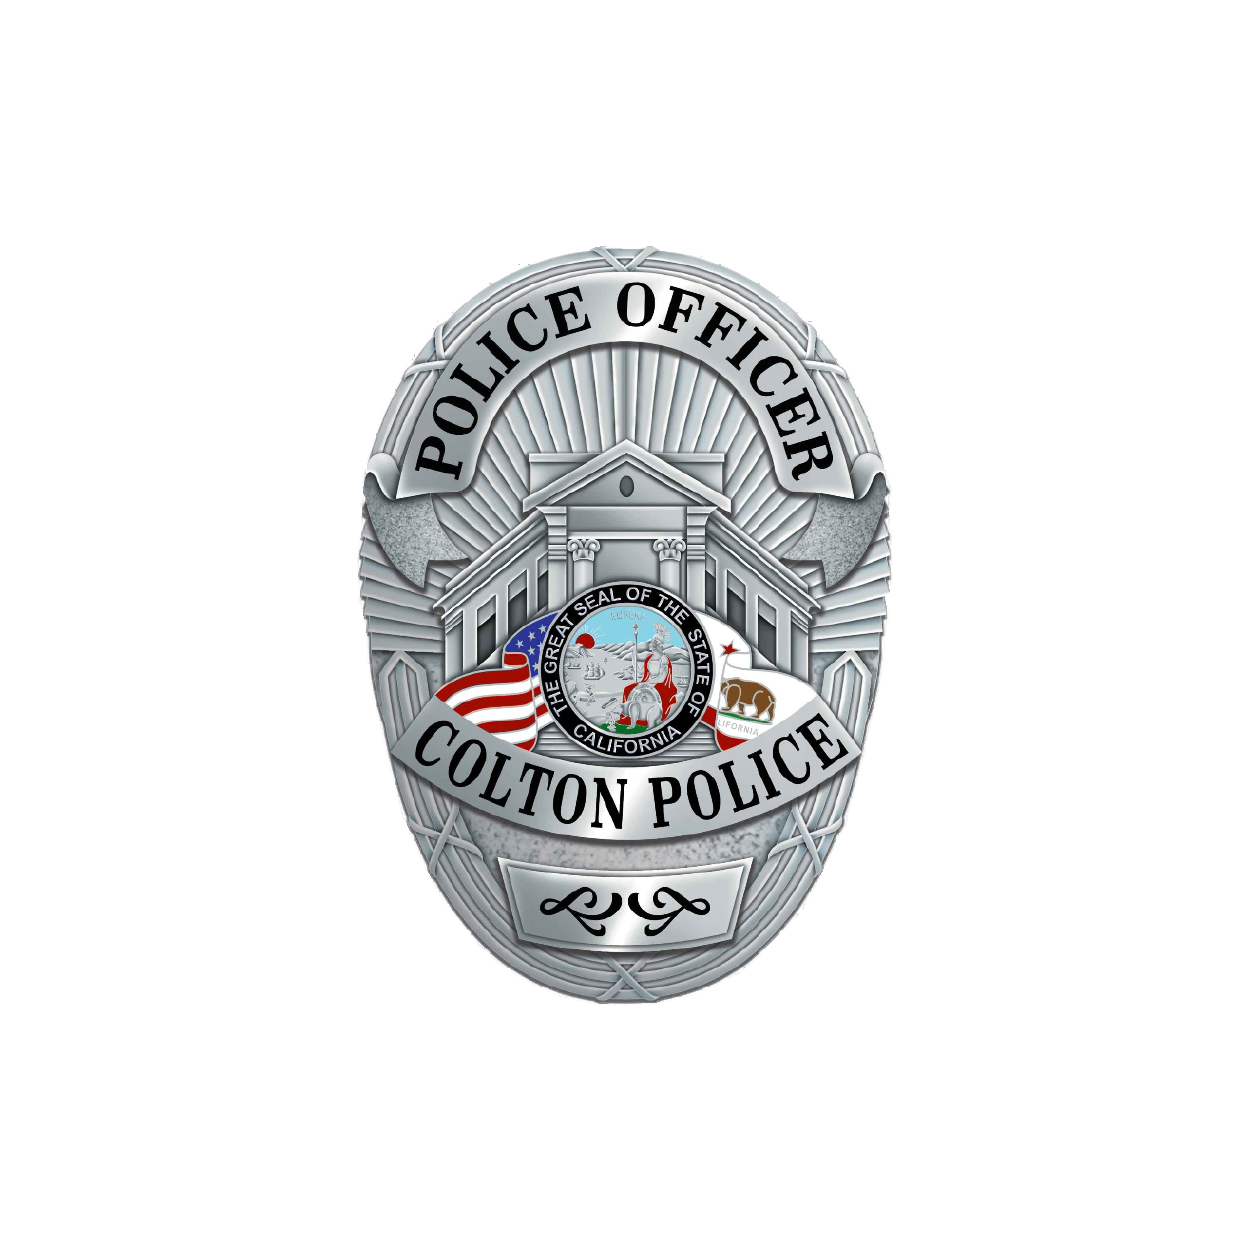 police-logo_colton.png